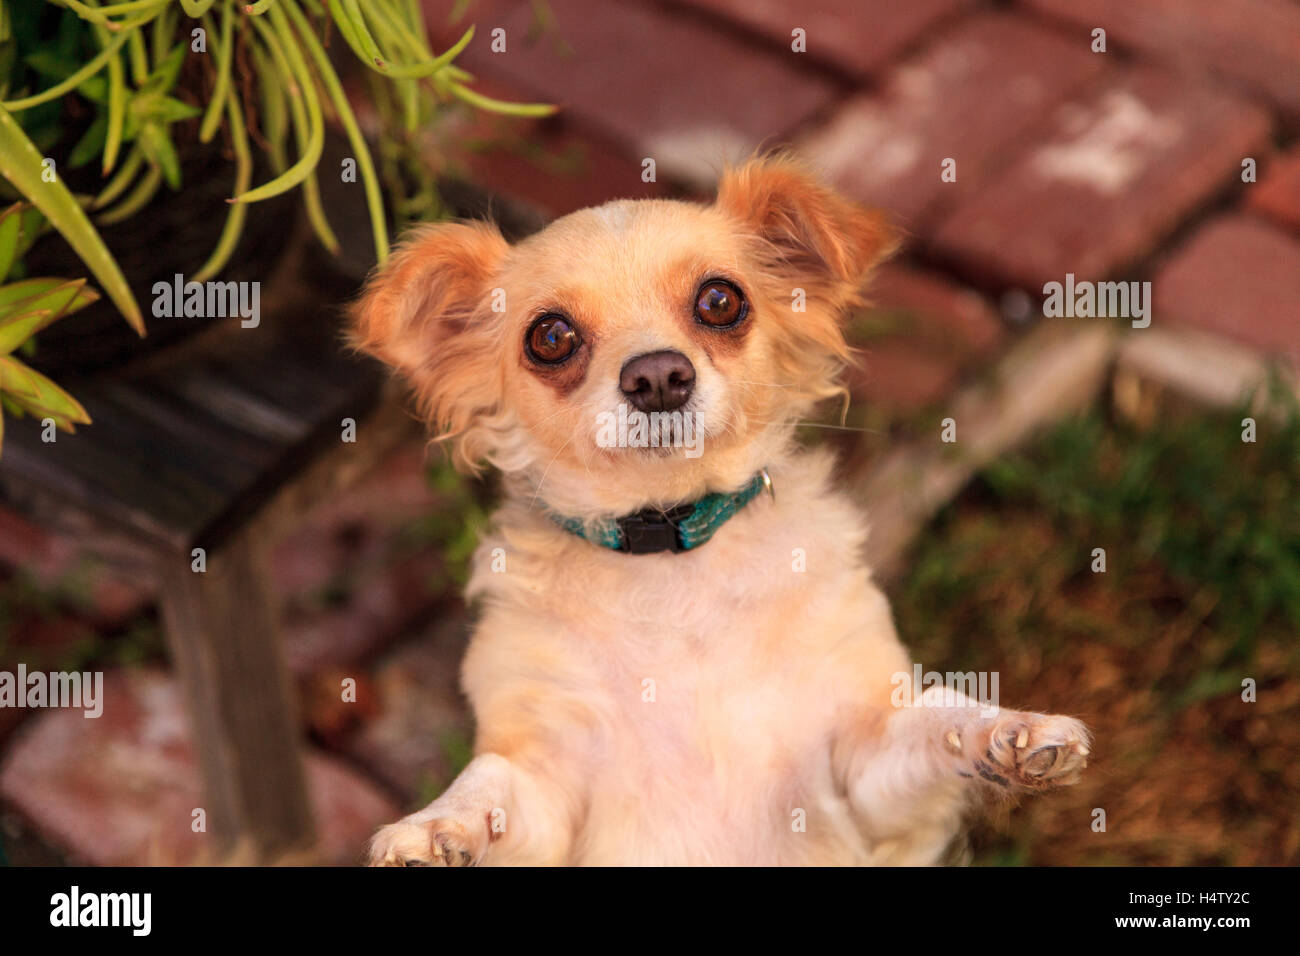 Small Blond Long Haired Chihuahua Mixed Breed Dog With Big Eyes Begs